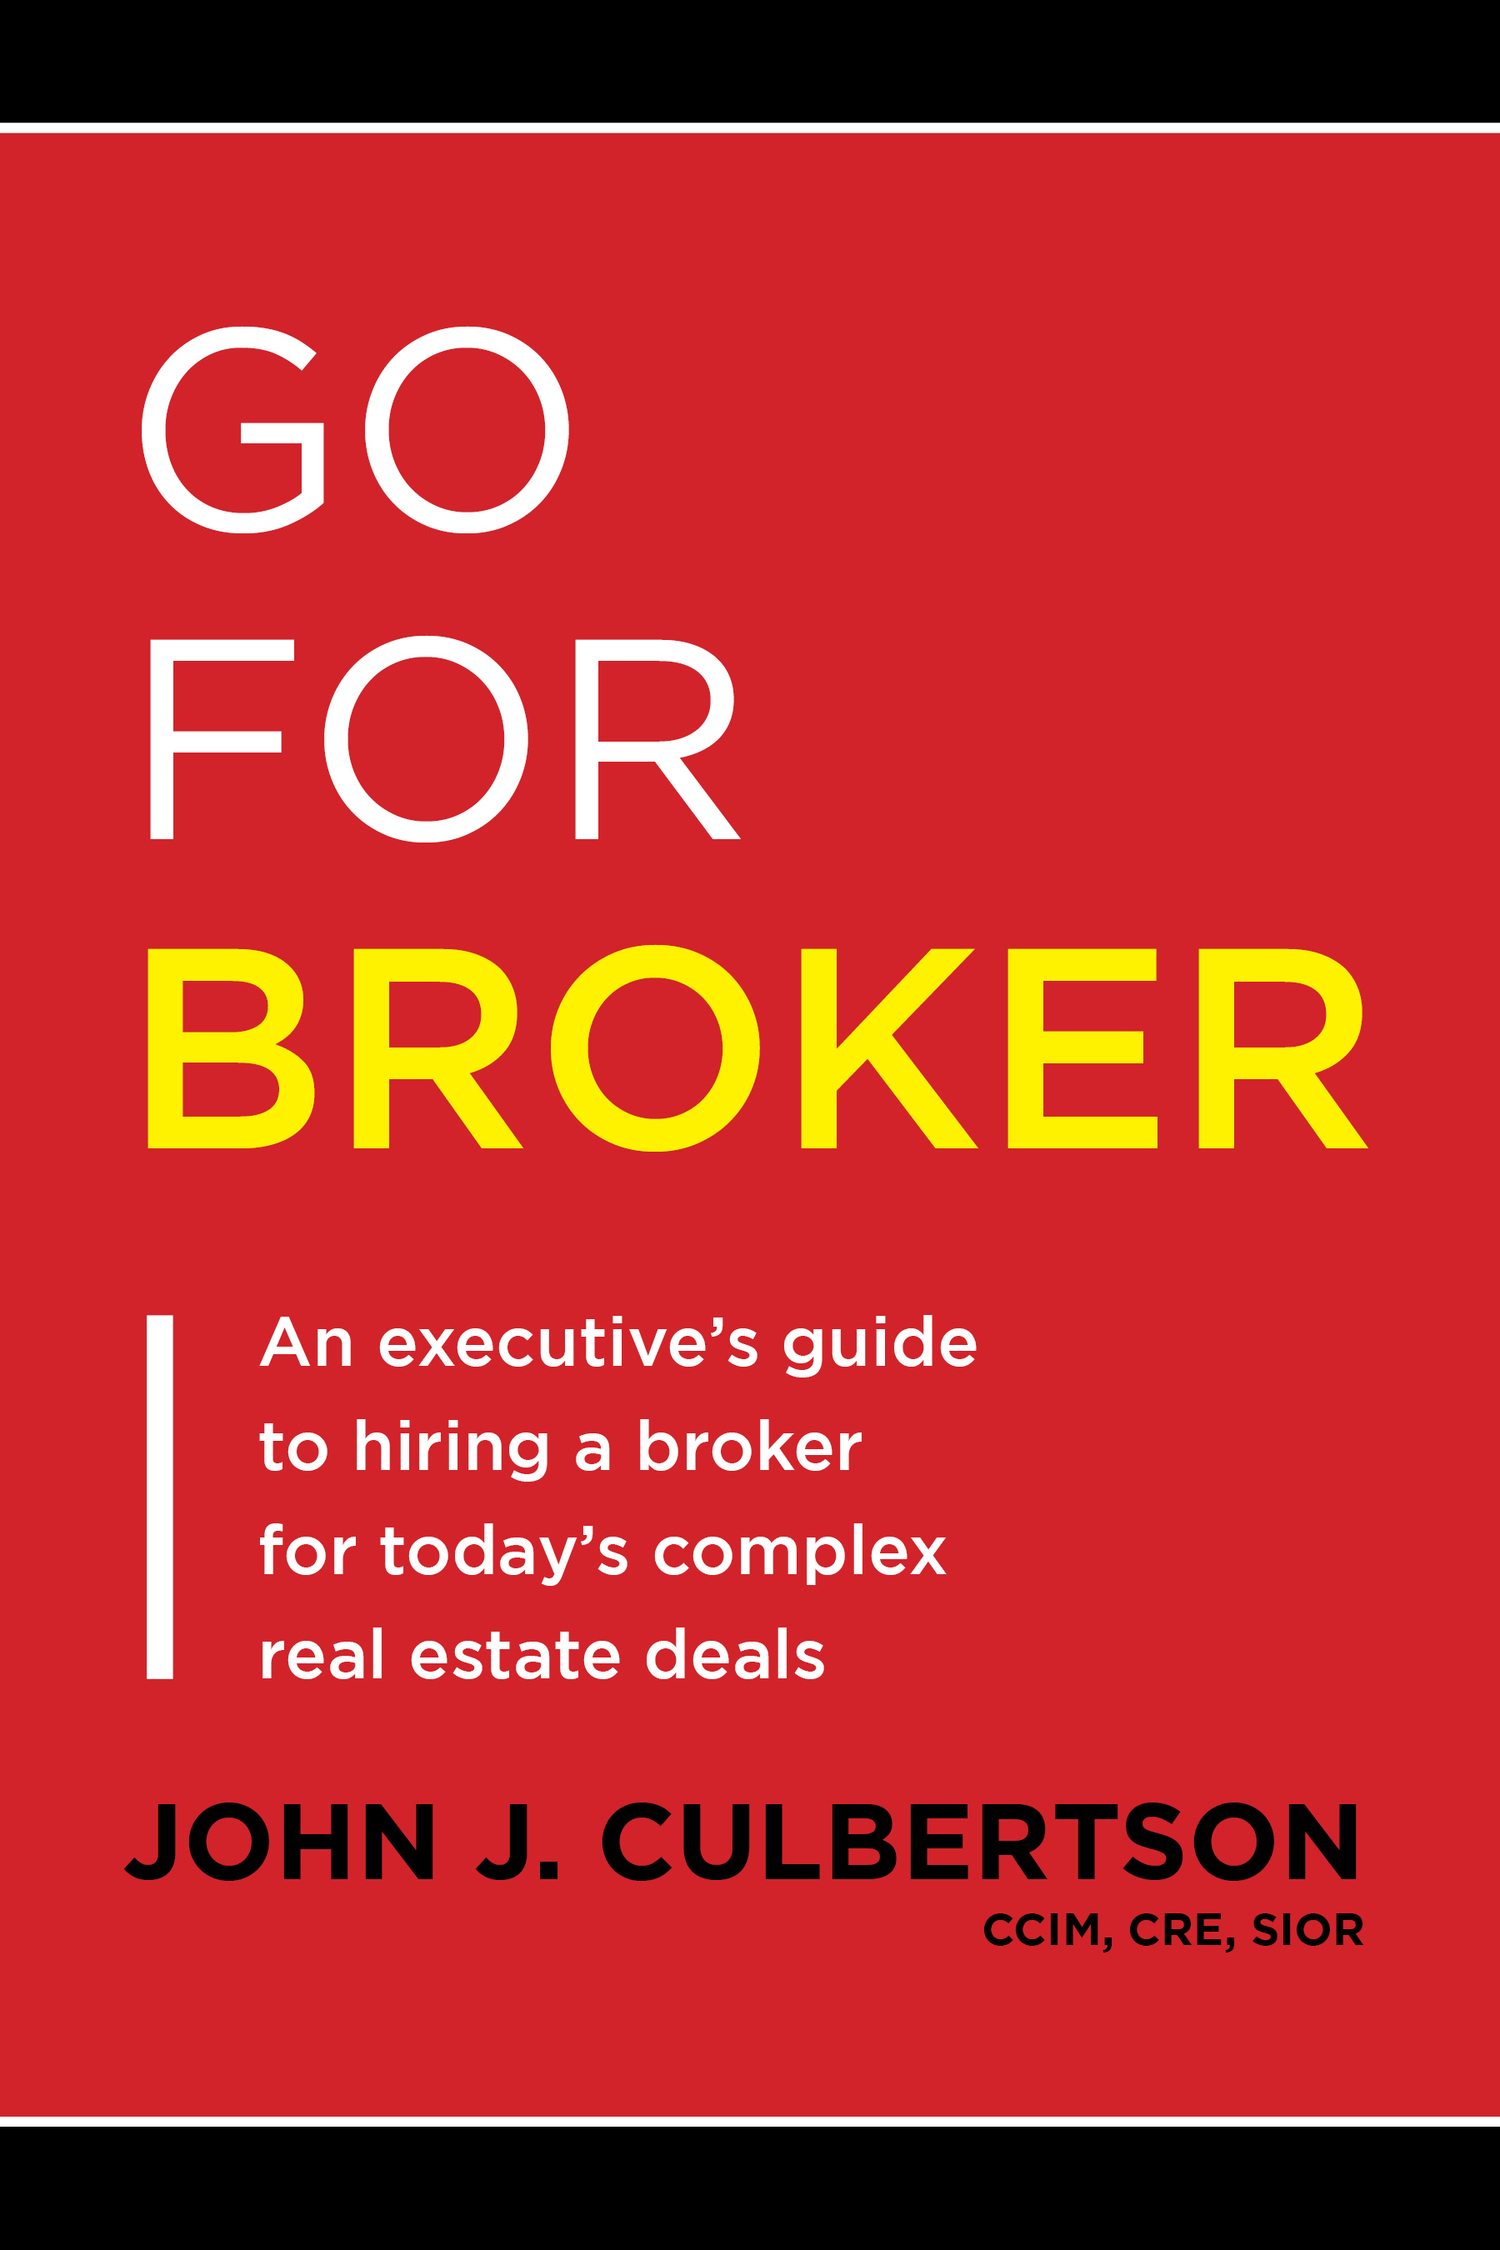 Go For Broker